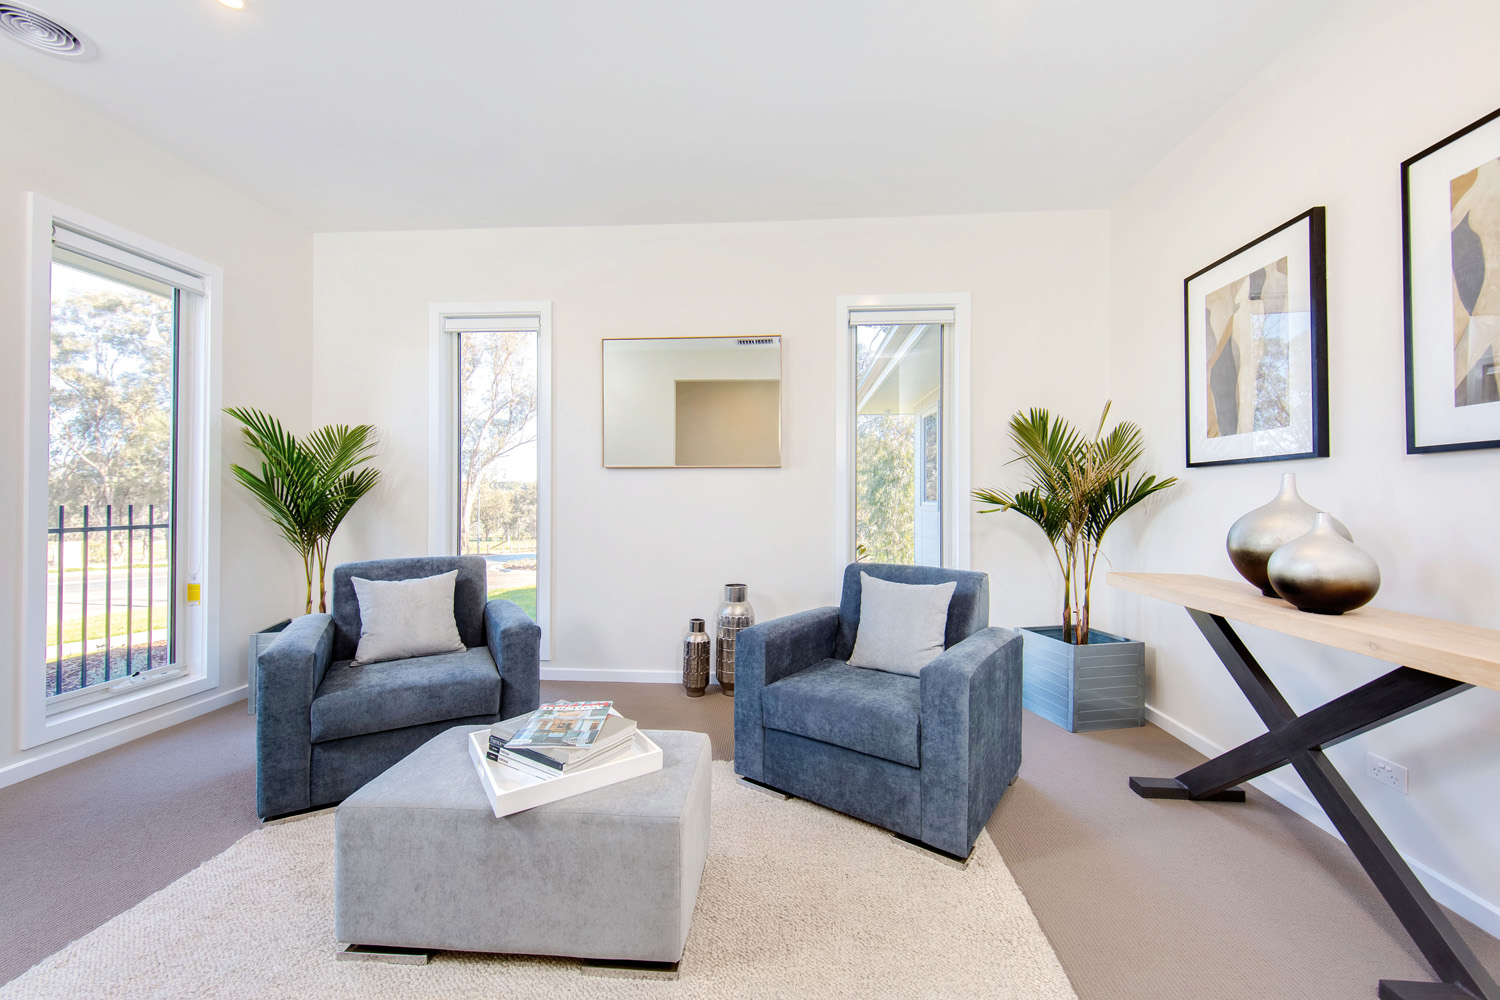 A comfortable sitting room is the ideal spot to unwind